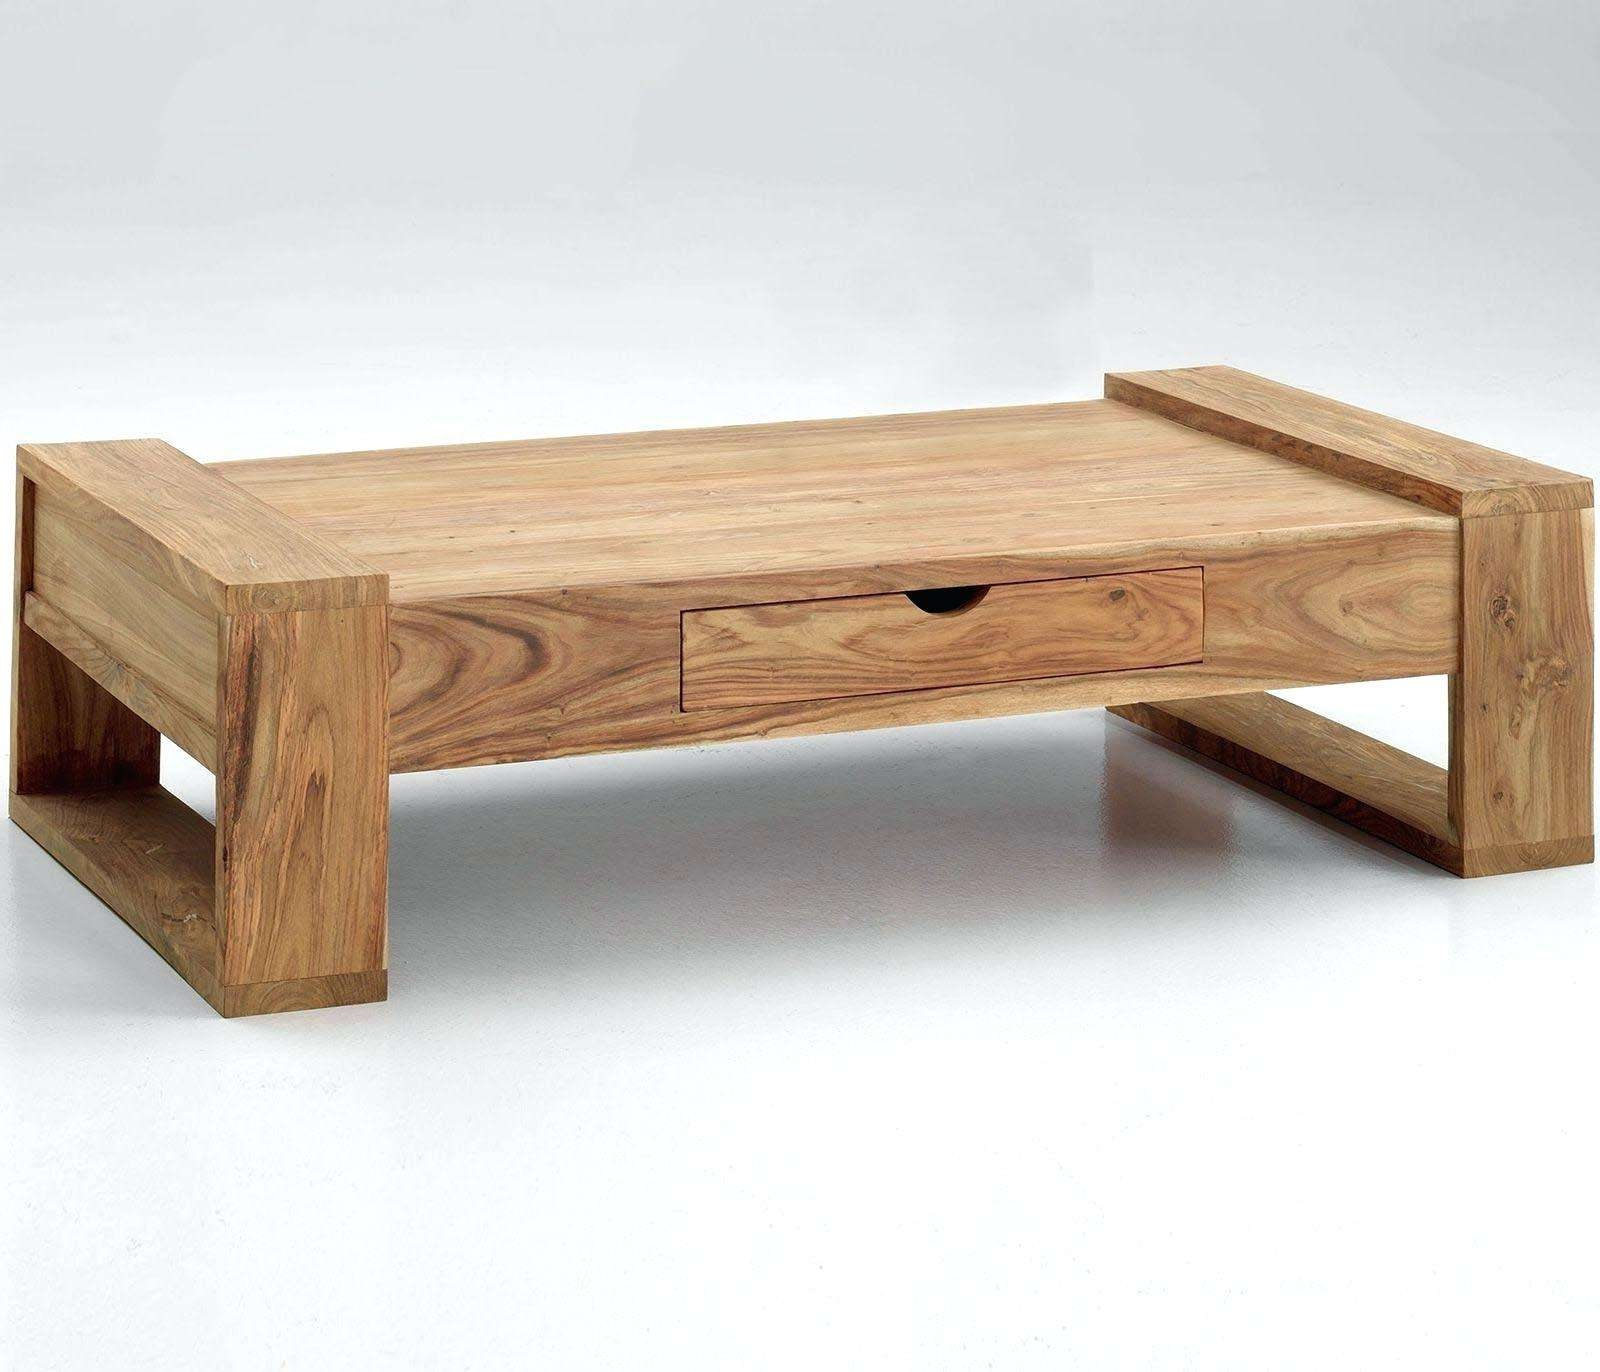 Preferred Low Coffee Tables Inside Coffee Tables : Small Low Coffee Table Design Ideas Oak Round Side (View 16 of 20)